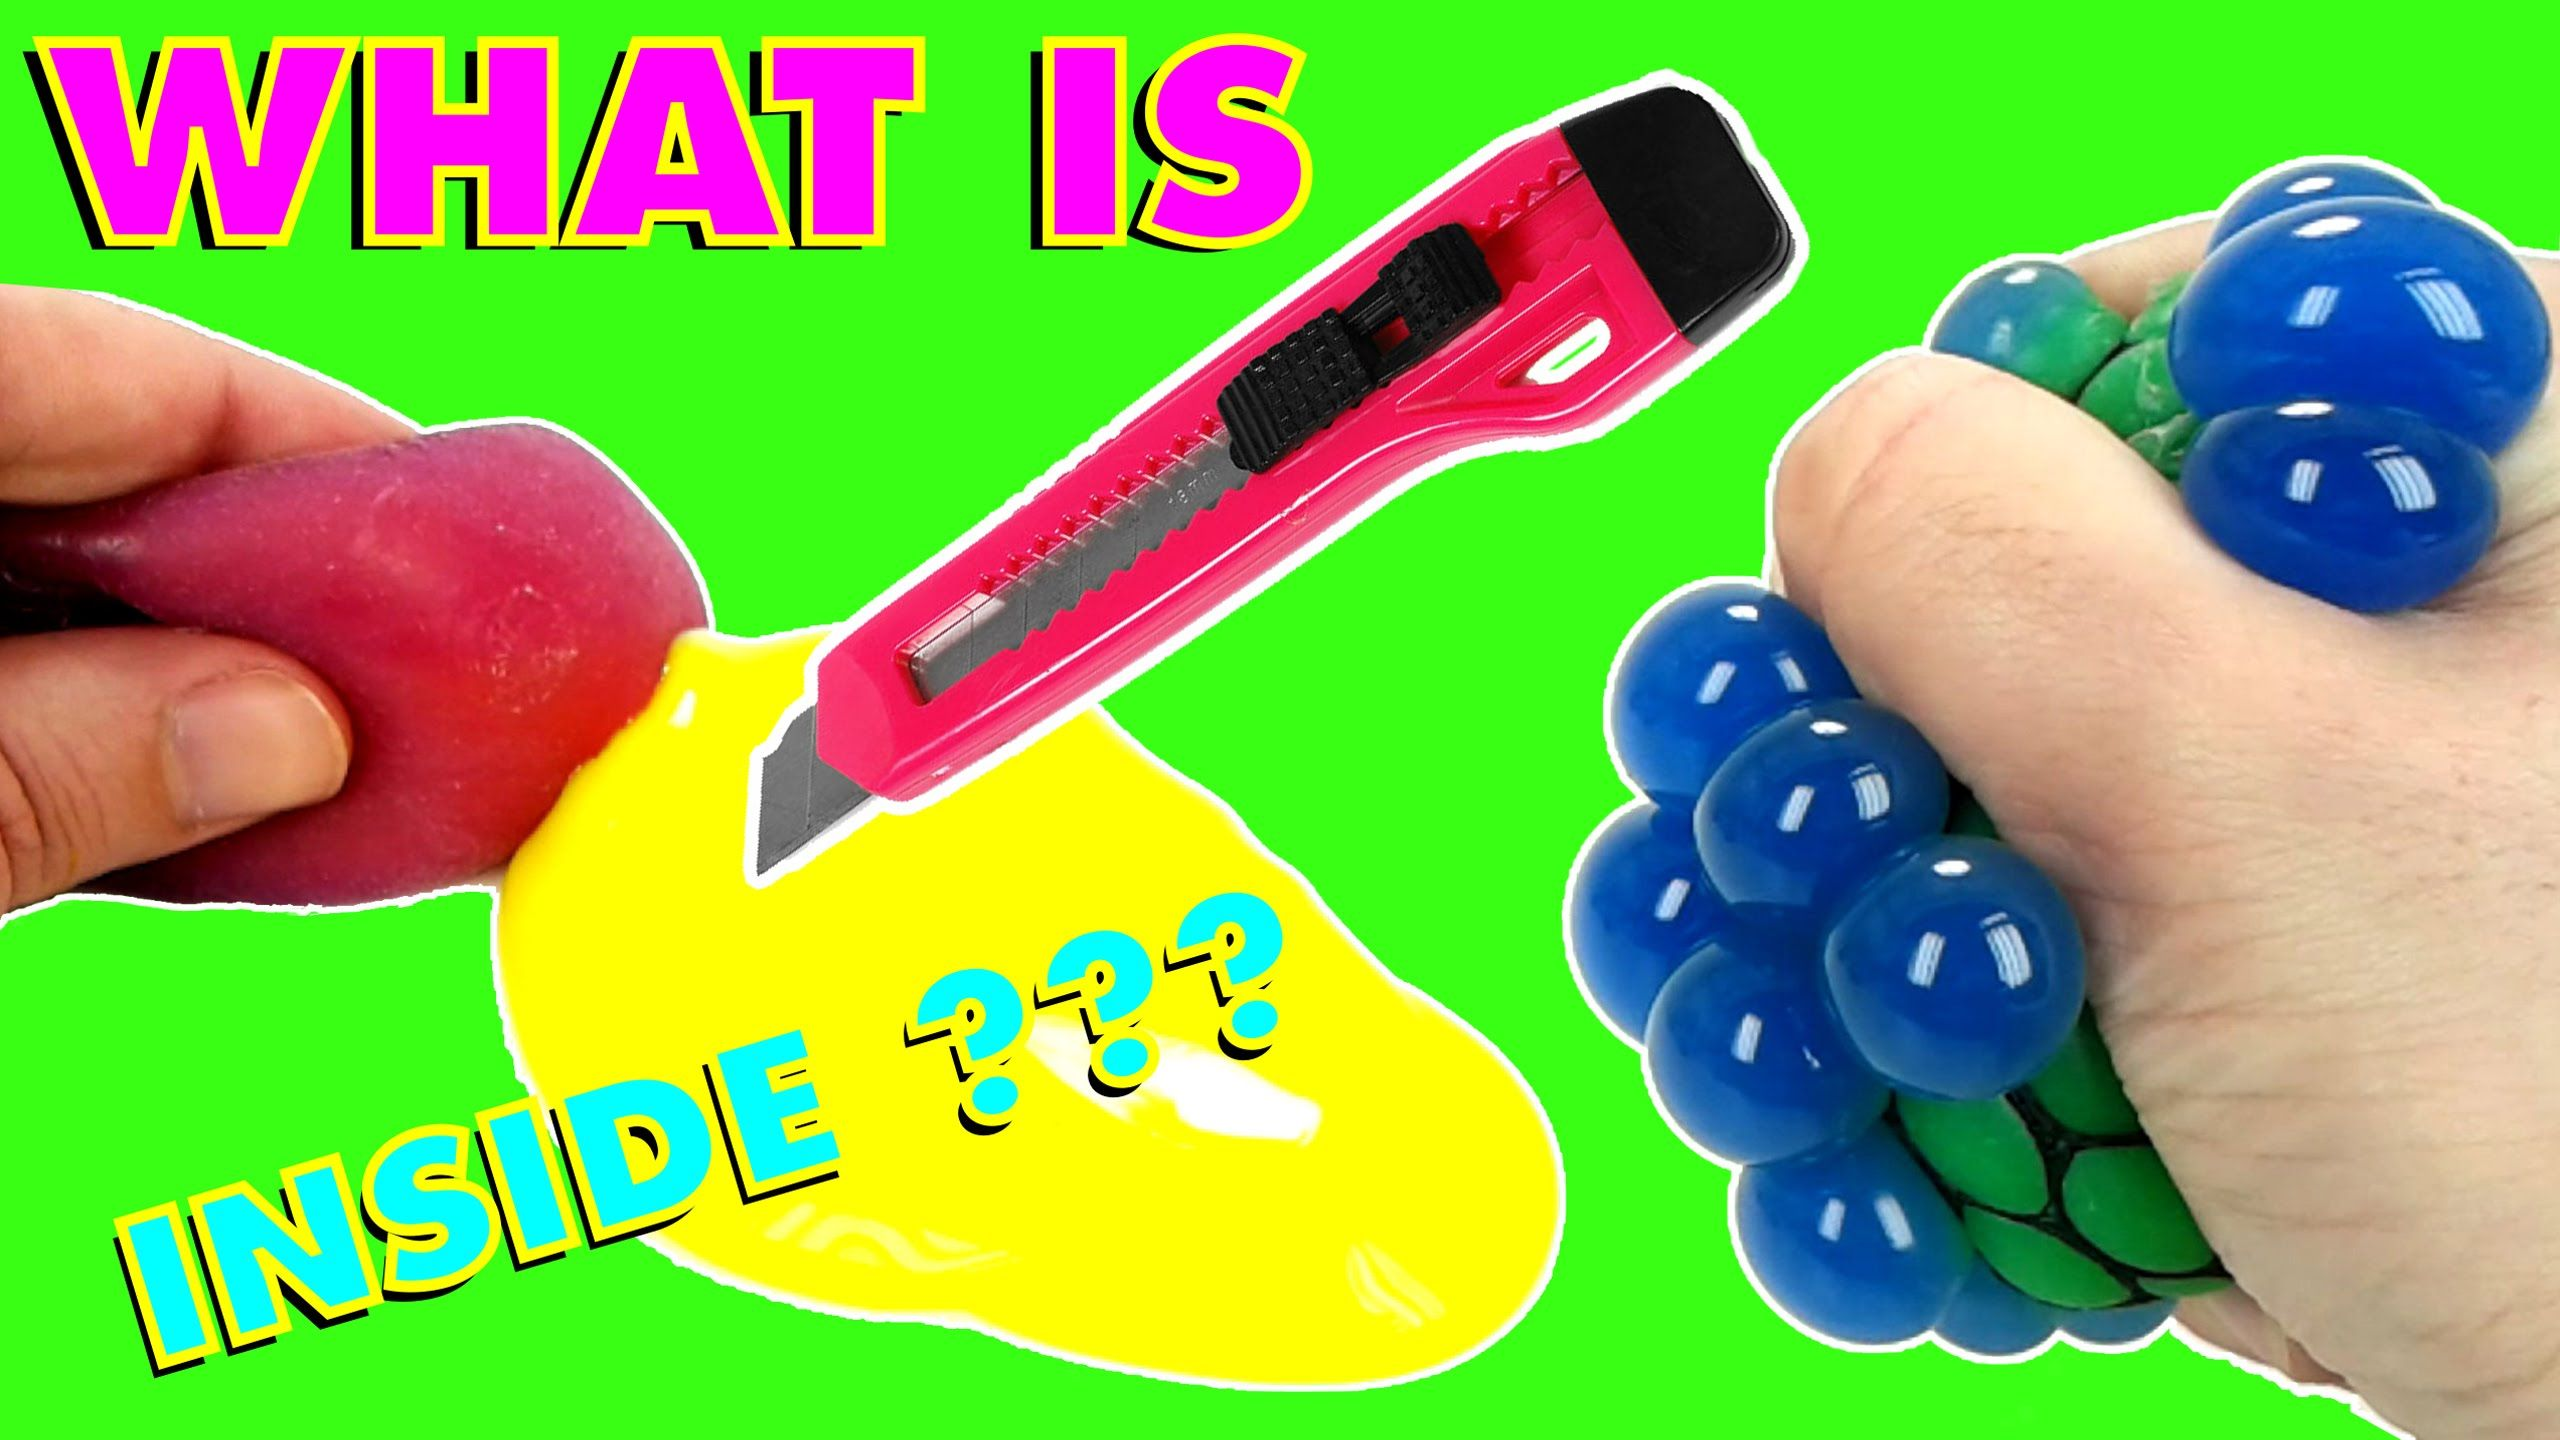 Squishy Slime Balls In Net Bag : What is INSIDE ??? Cutting Open Squishy Mesh SLIME Stress Balls Funny & Weird Color Changing ...